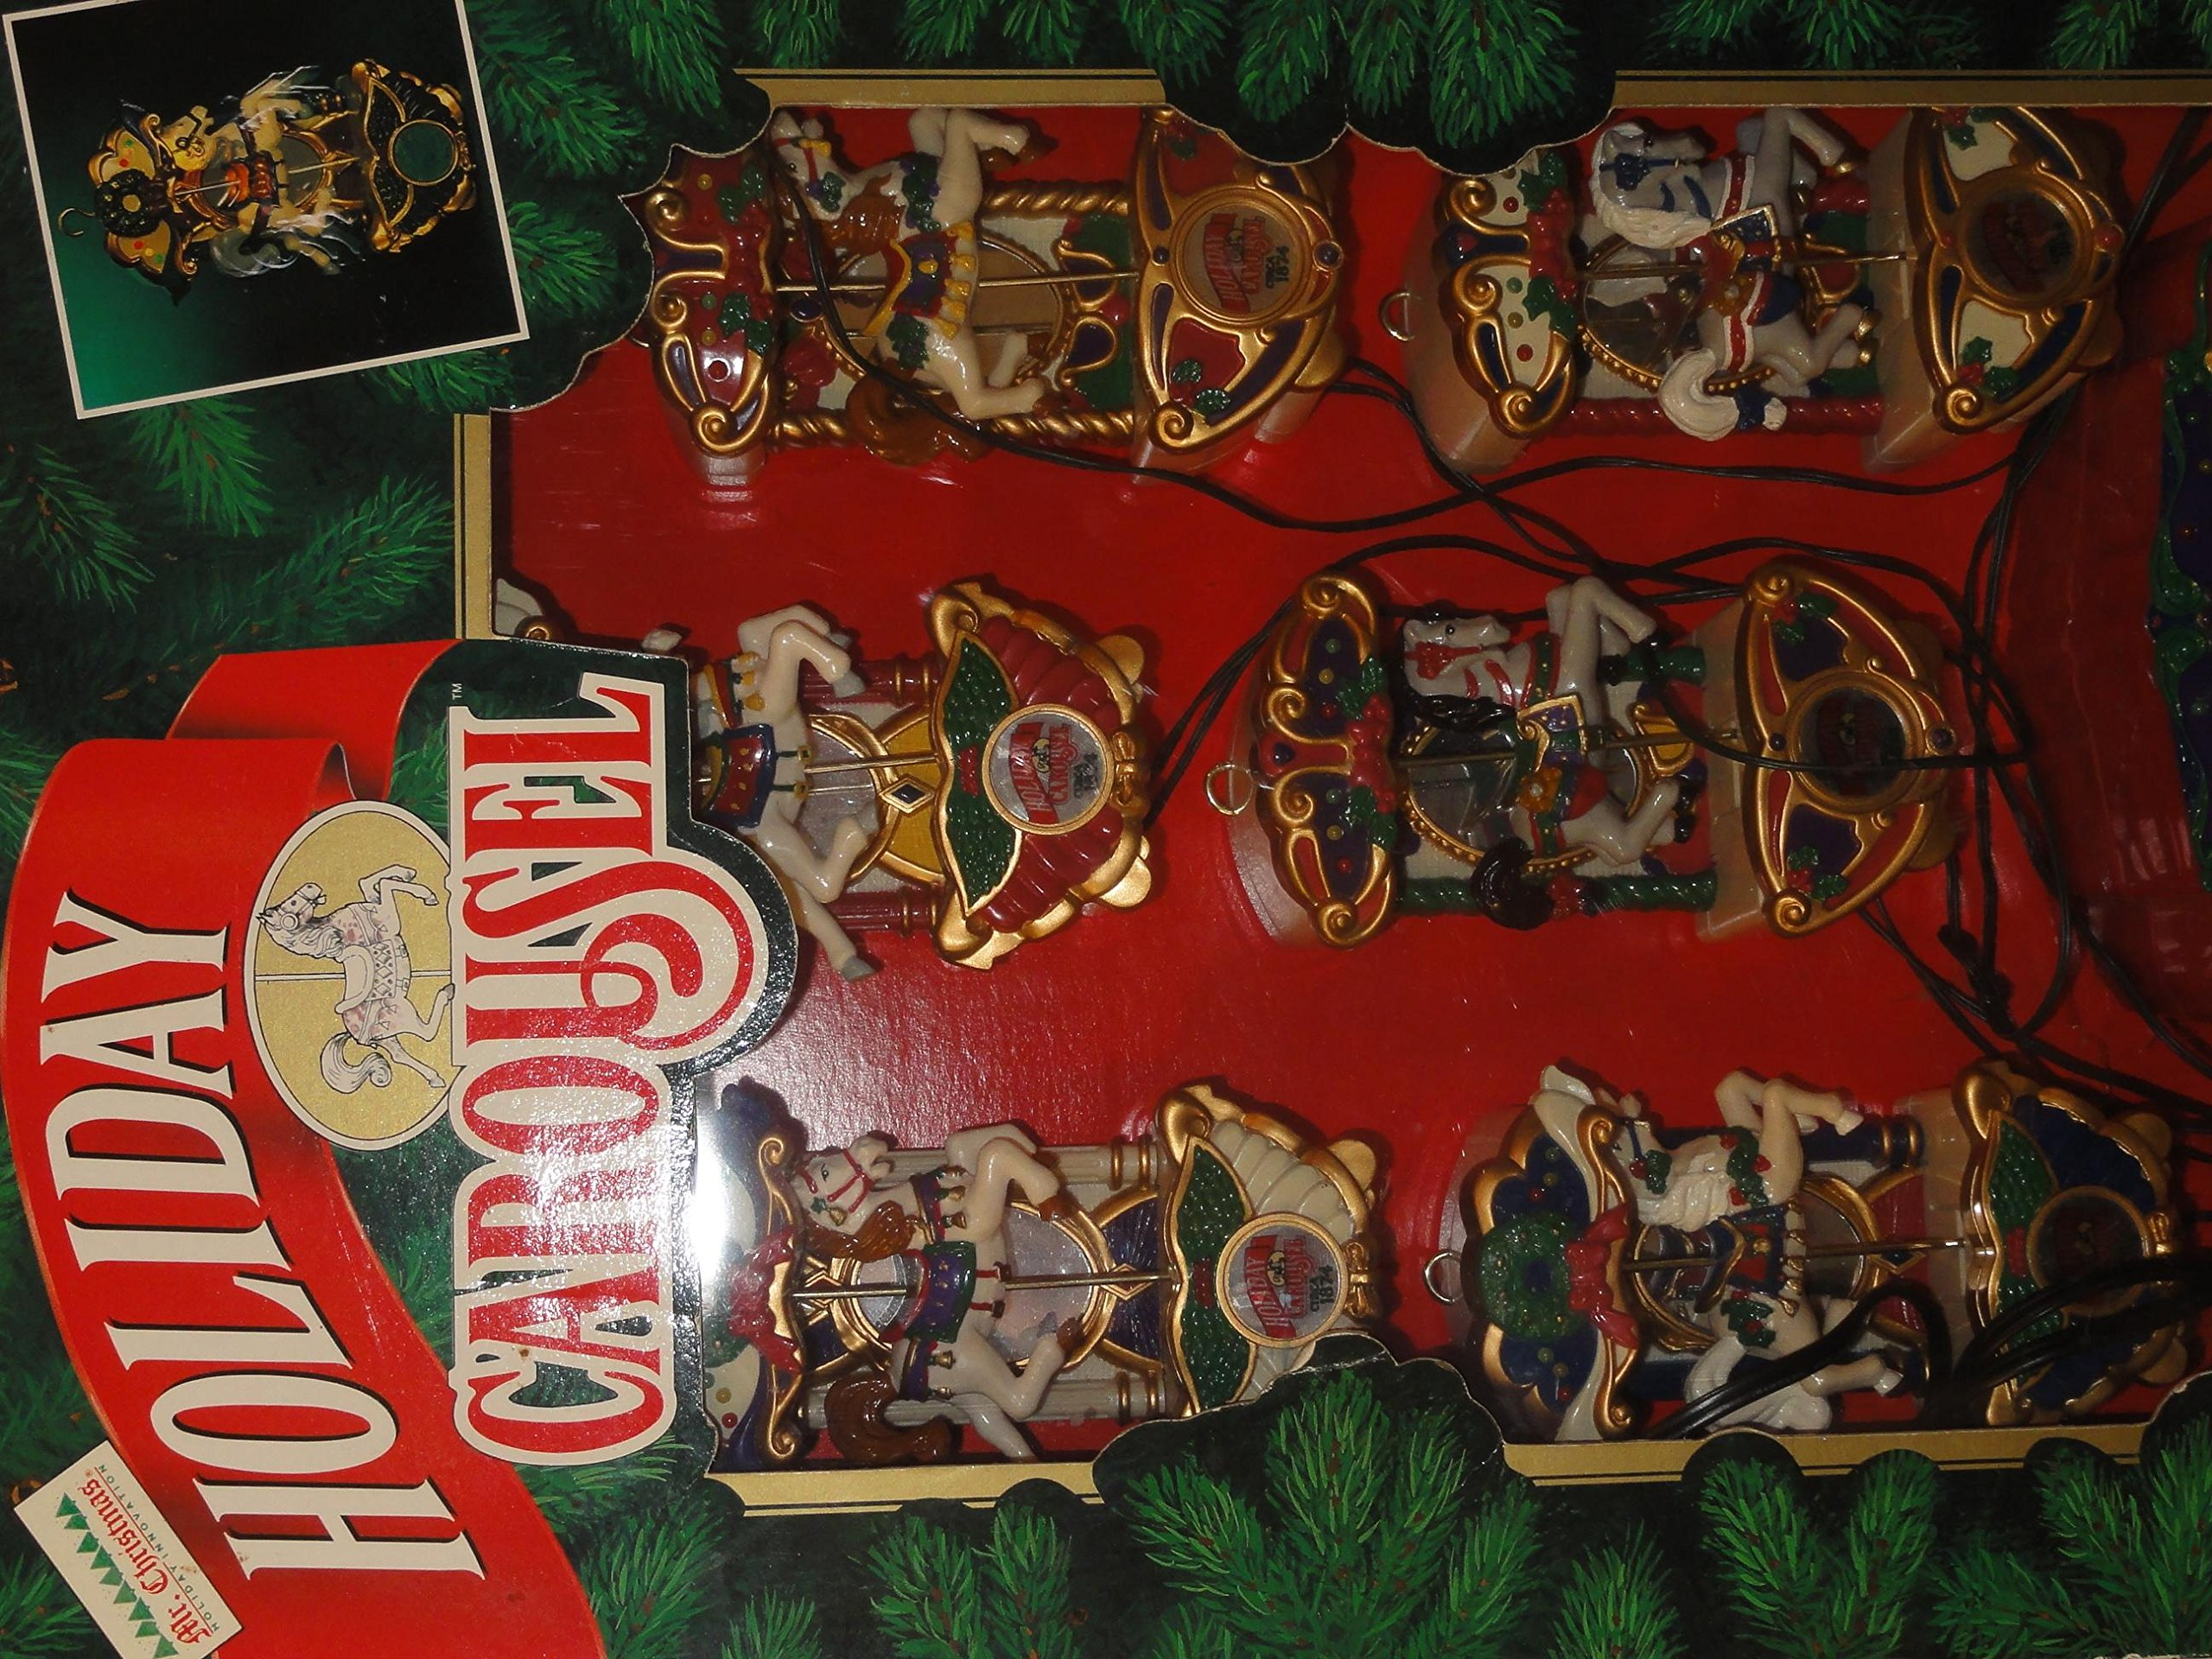 Mr. Christmas Holiday Carousel Musical / 6 Horses Figurines